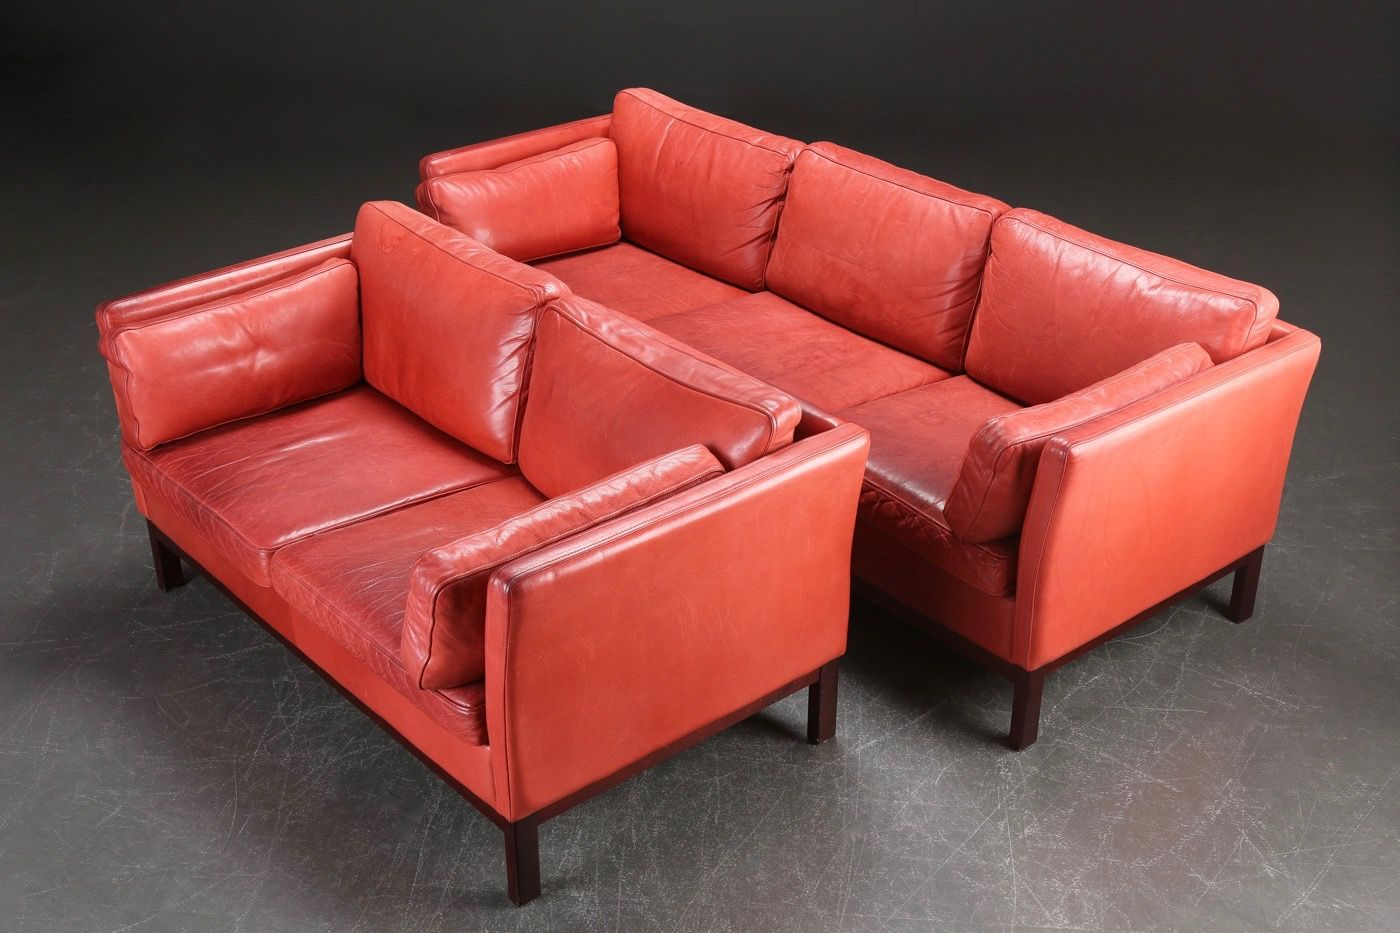 Danish Red Leather Sofas 1980s Set Of 2 For Sale At Pamono